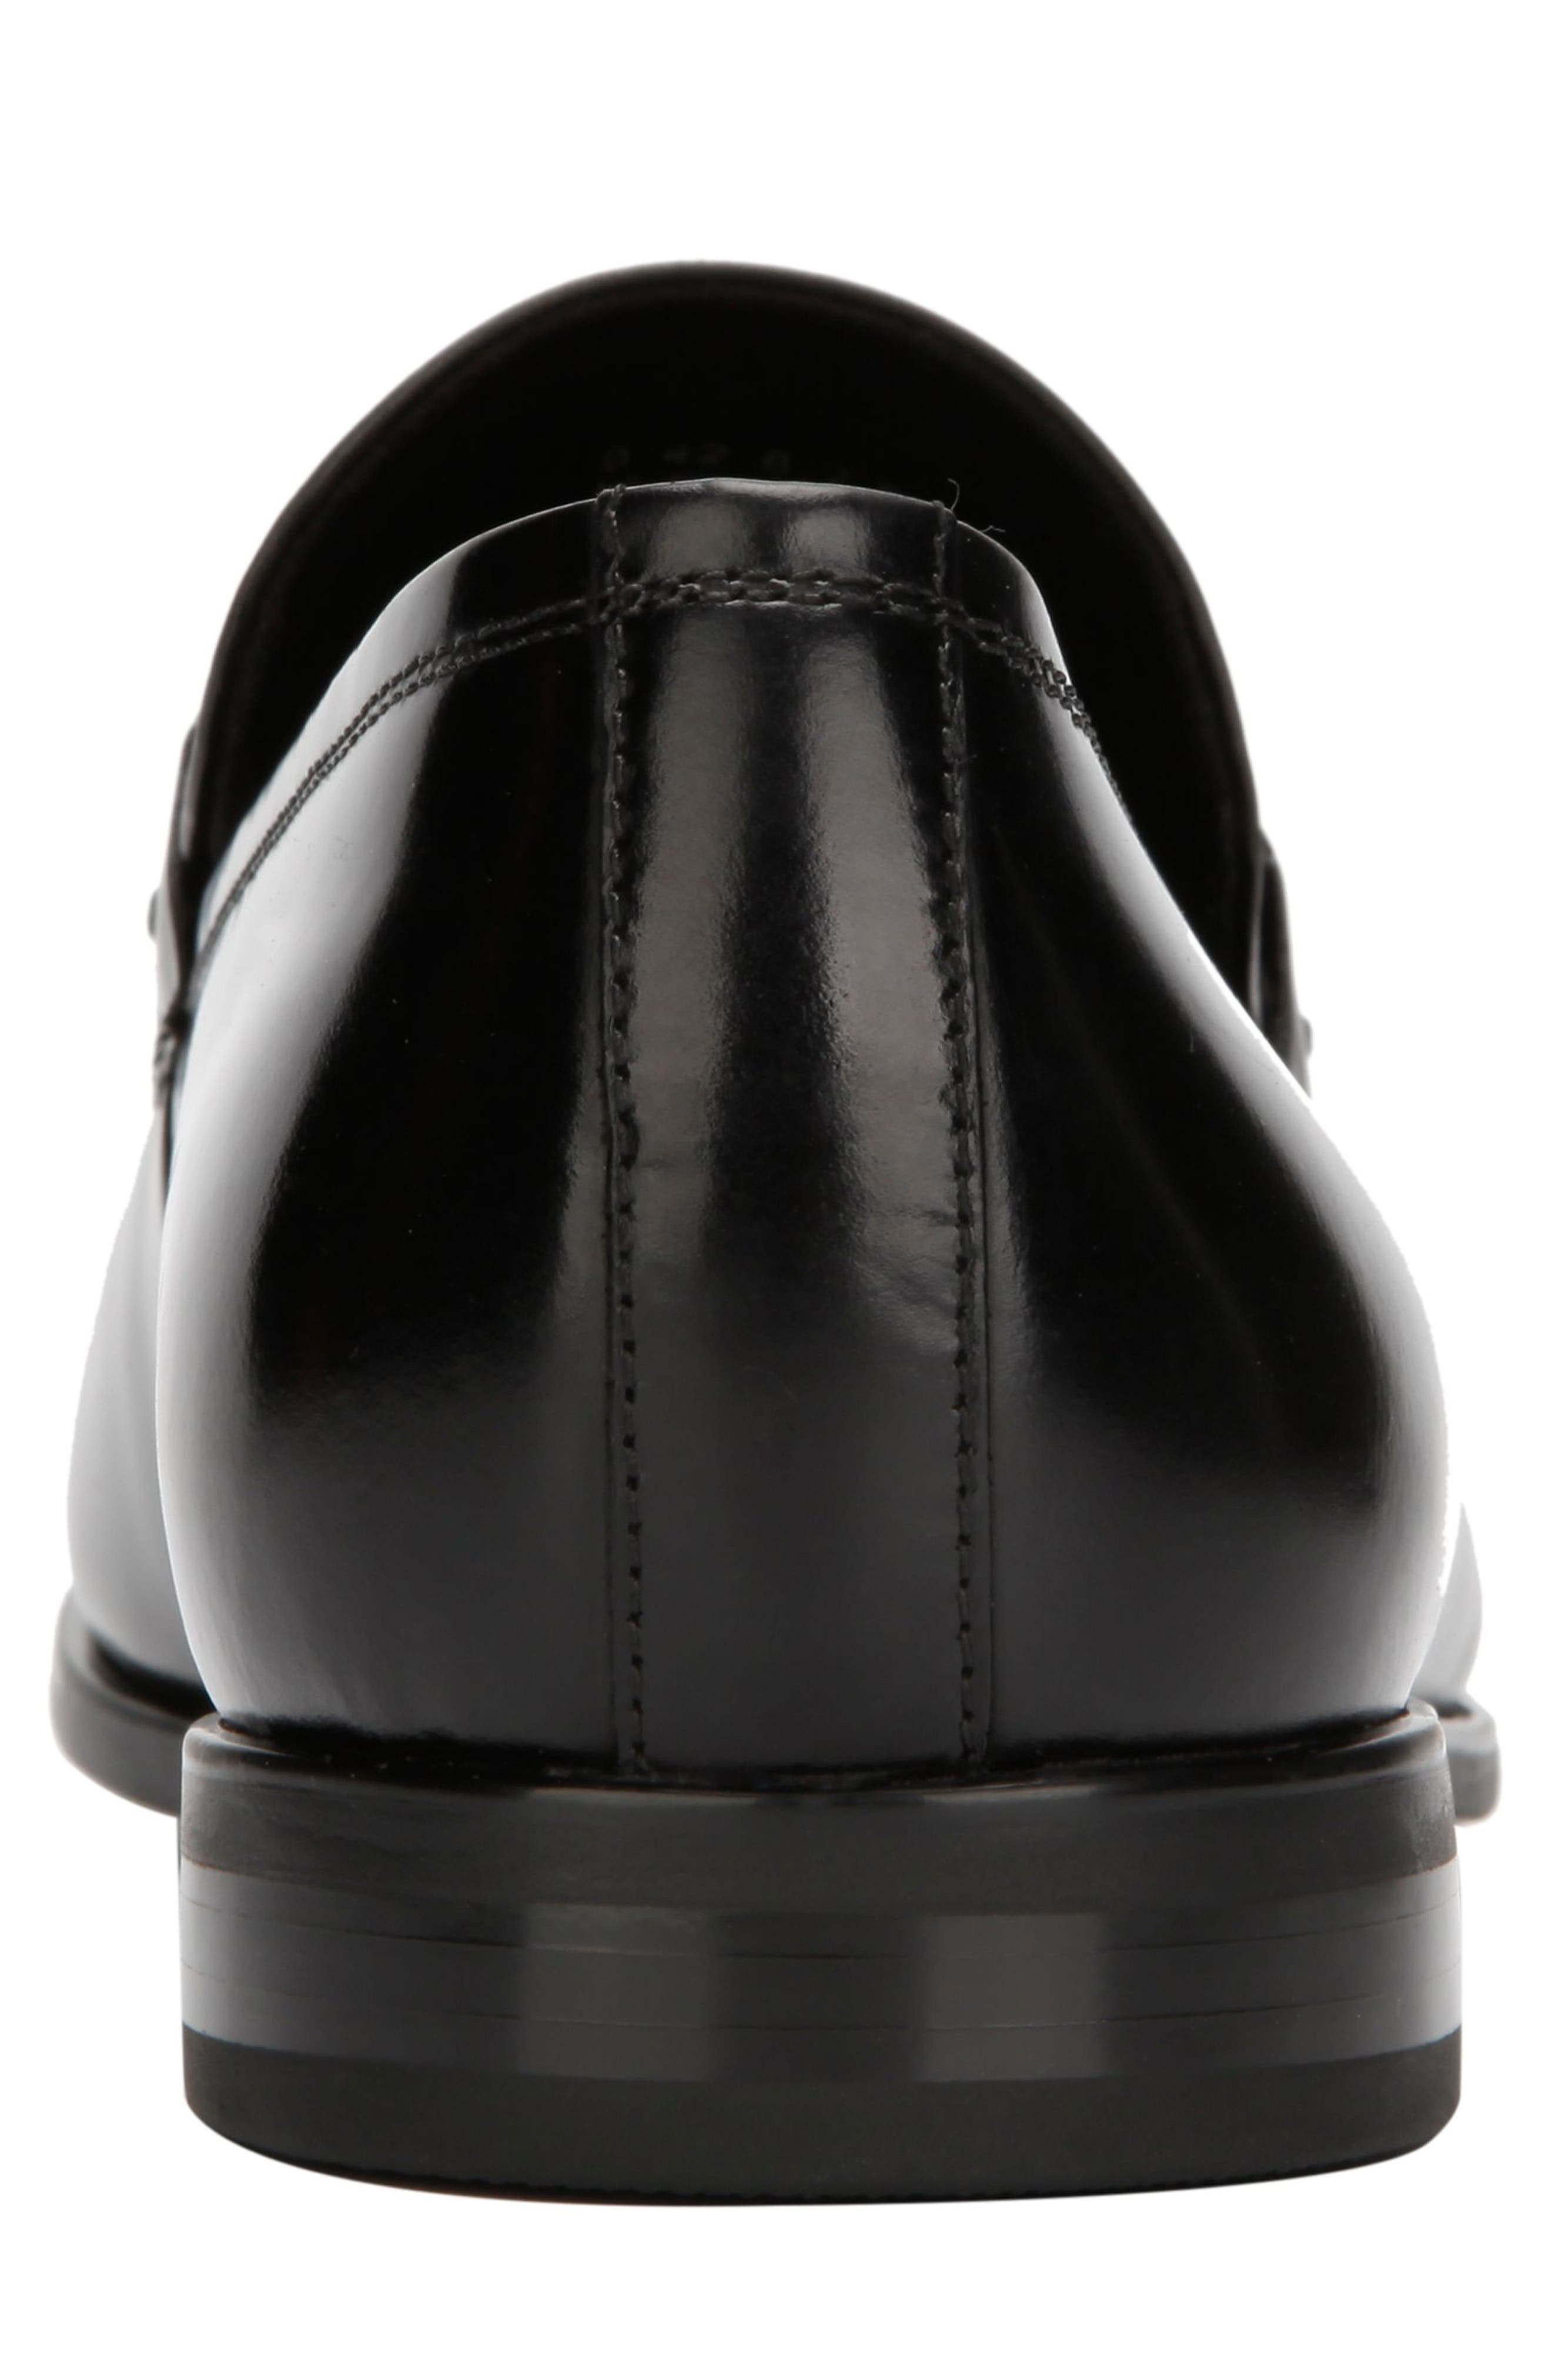 KENNETH COLE NEW YORK, Aaron Toe Loafer, Alternate thumbnail 5, color, 001